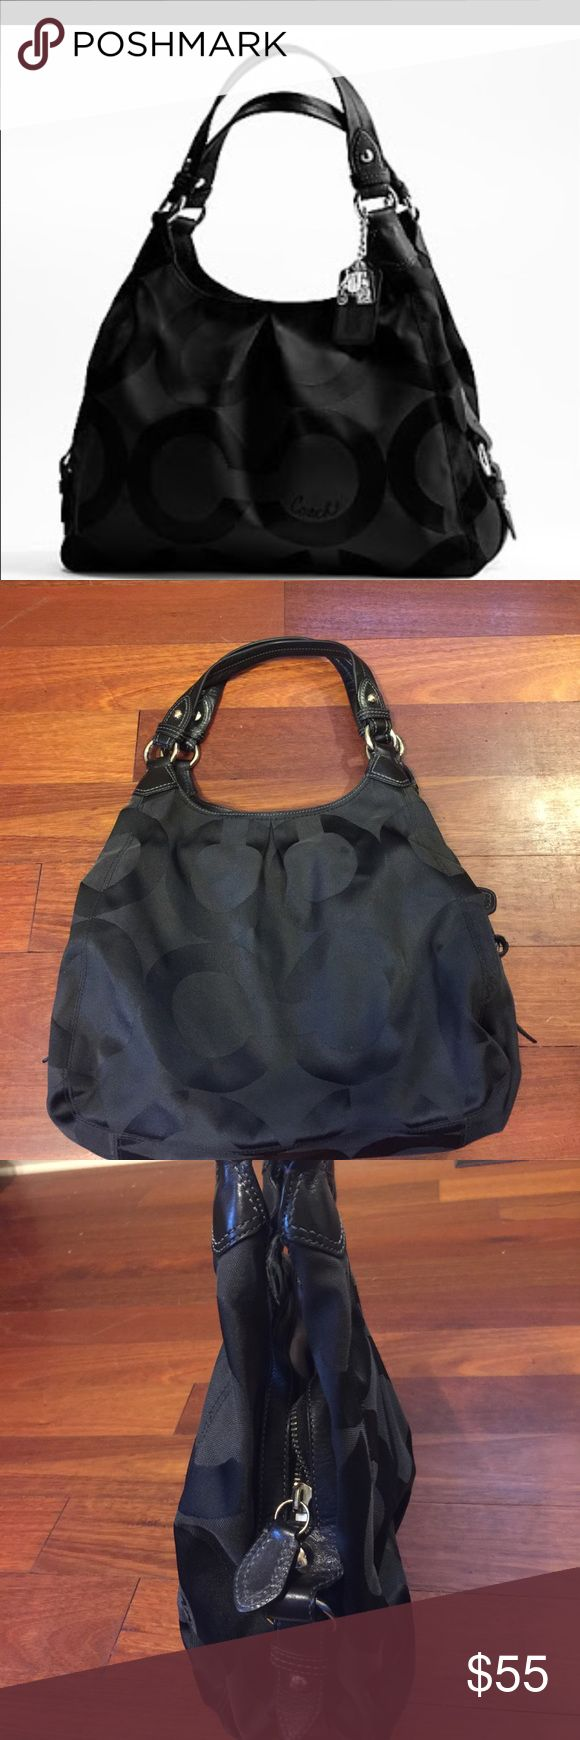 Black Coach Purse This is a used Coach purse that is black in color with. Lack leather straps. The inside is lined with light purple and has a ton of storage space. The print is the signature Coach print. This handbag was dry cleaned after last use. Please let me know if you have any questions. Thanks! Coach Bags Shoulder Bags